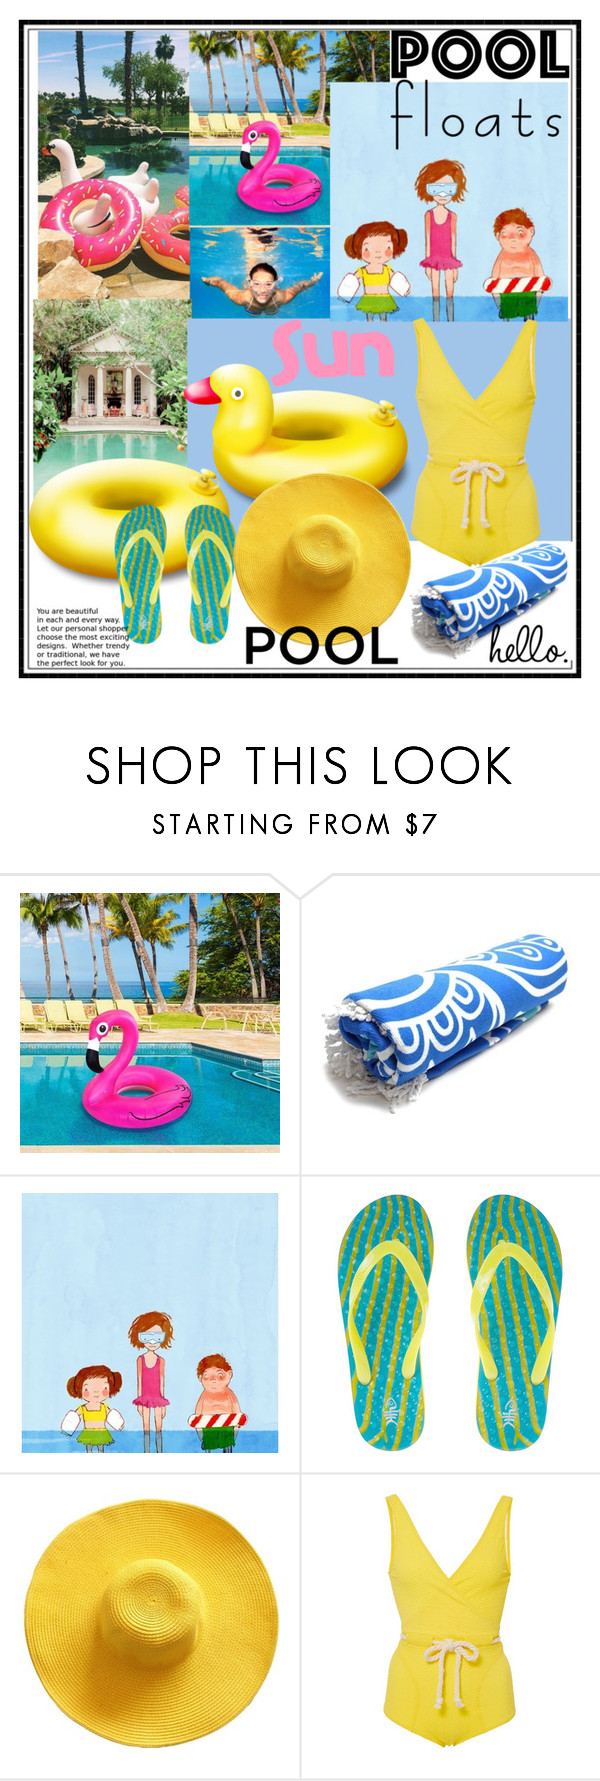 """Pool fun"" by kleinwillwin ❤ liked on Polyvore featuring interior, interiors, interior design, home, home decor, interior decorating and Lisa Marie Fernandez"